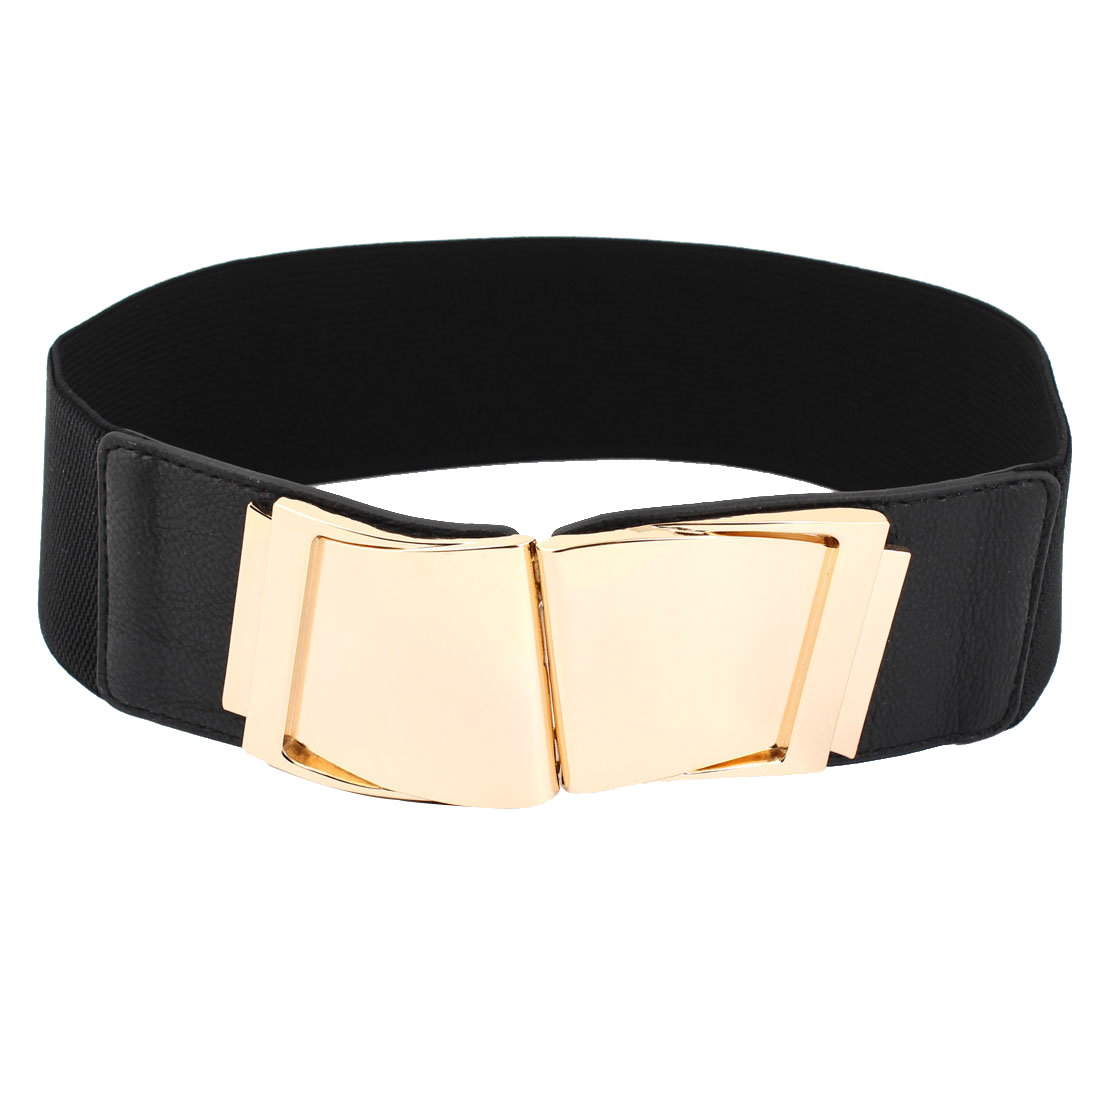 Women Metal Gold Tone Interlocking Buckle Waist Cinch Belt Black